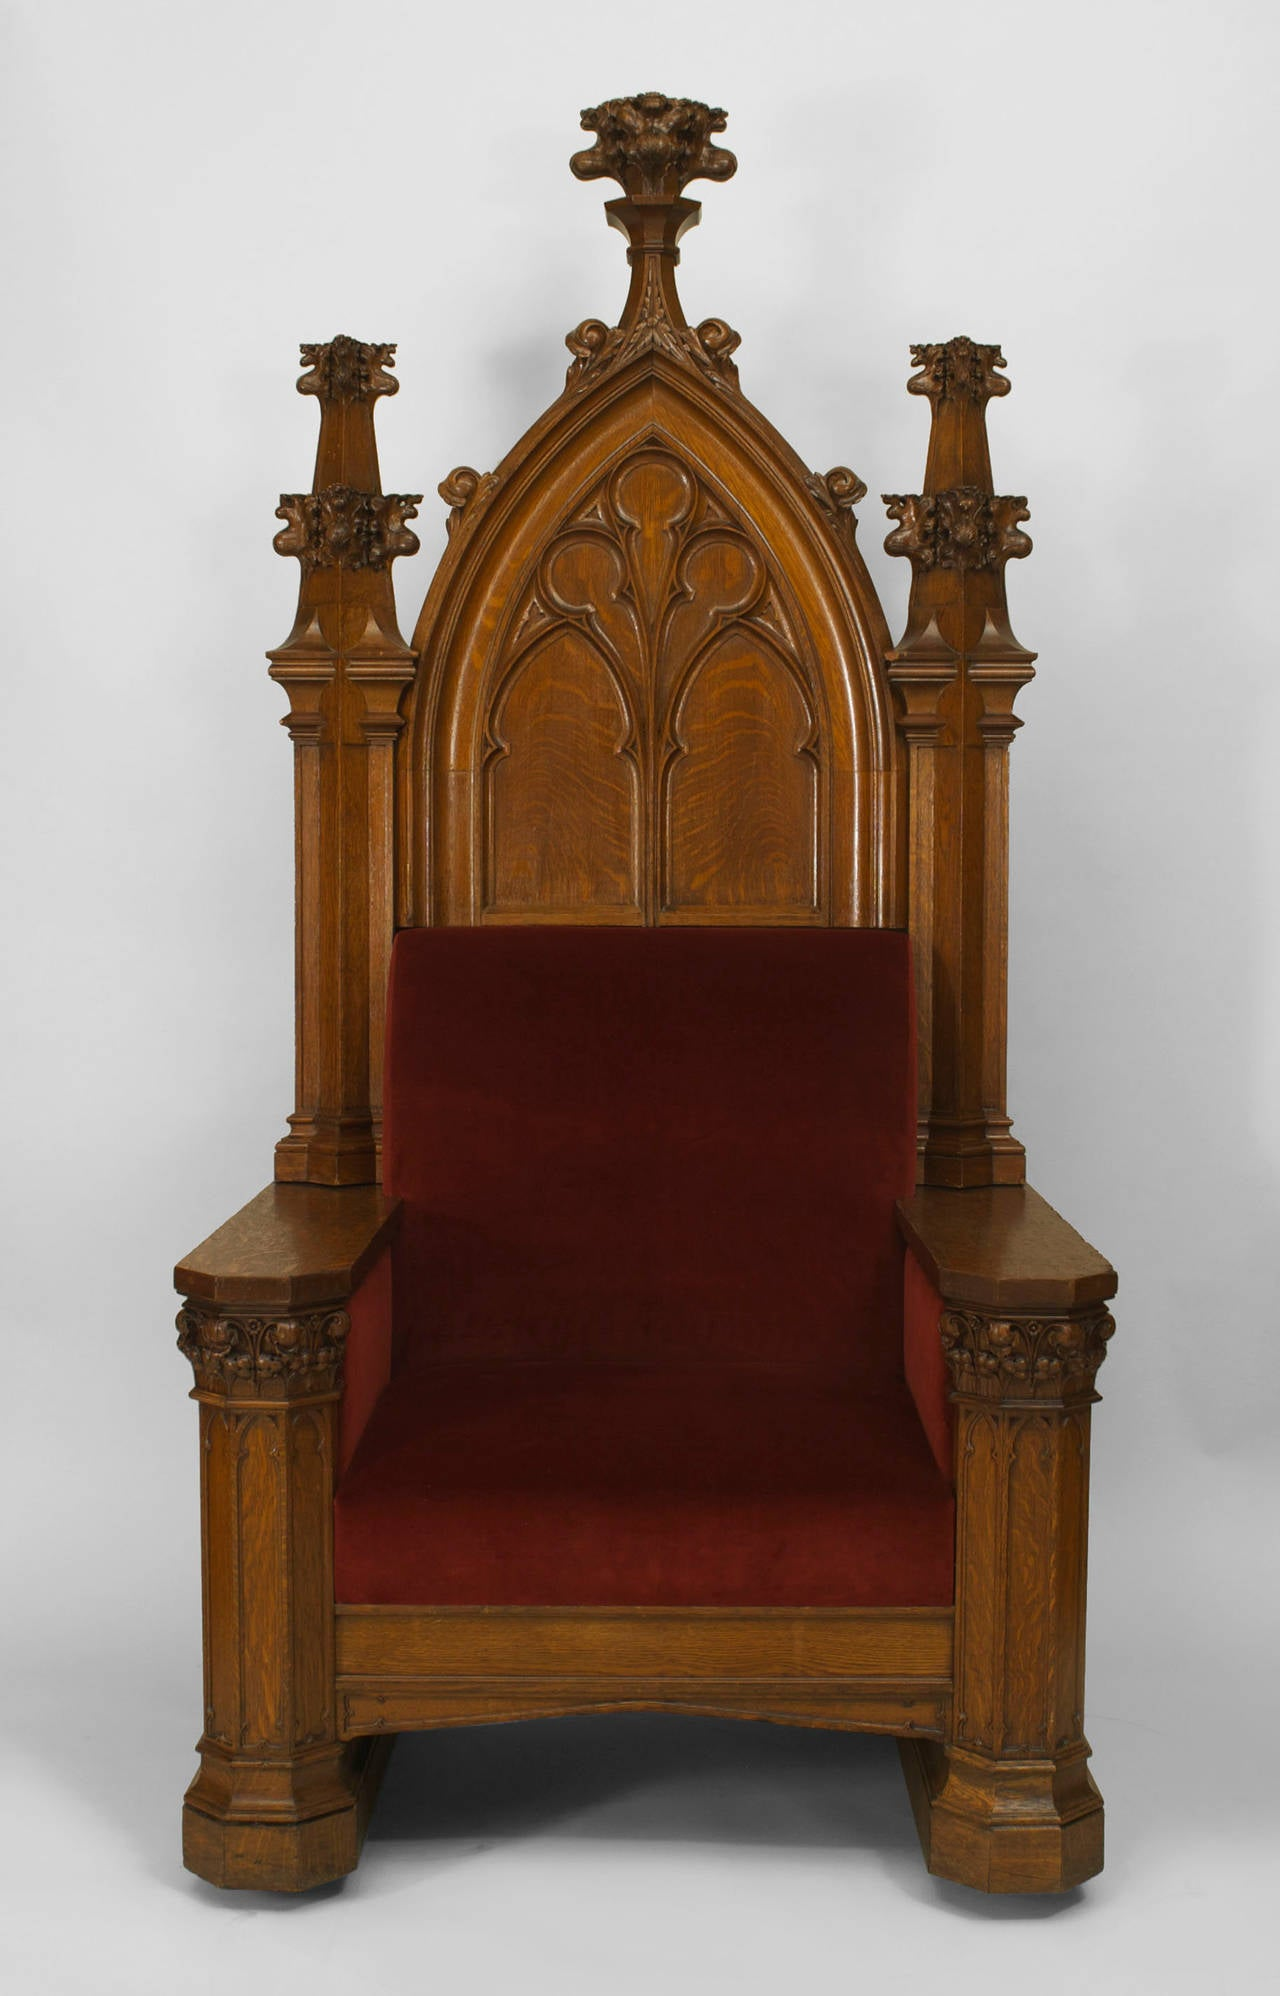 Oversized Turn Of The Century English Gothic Revival